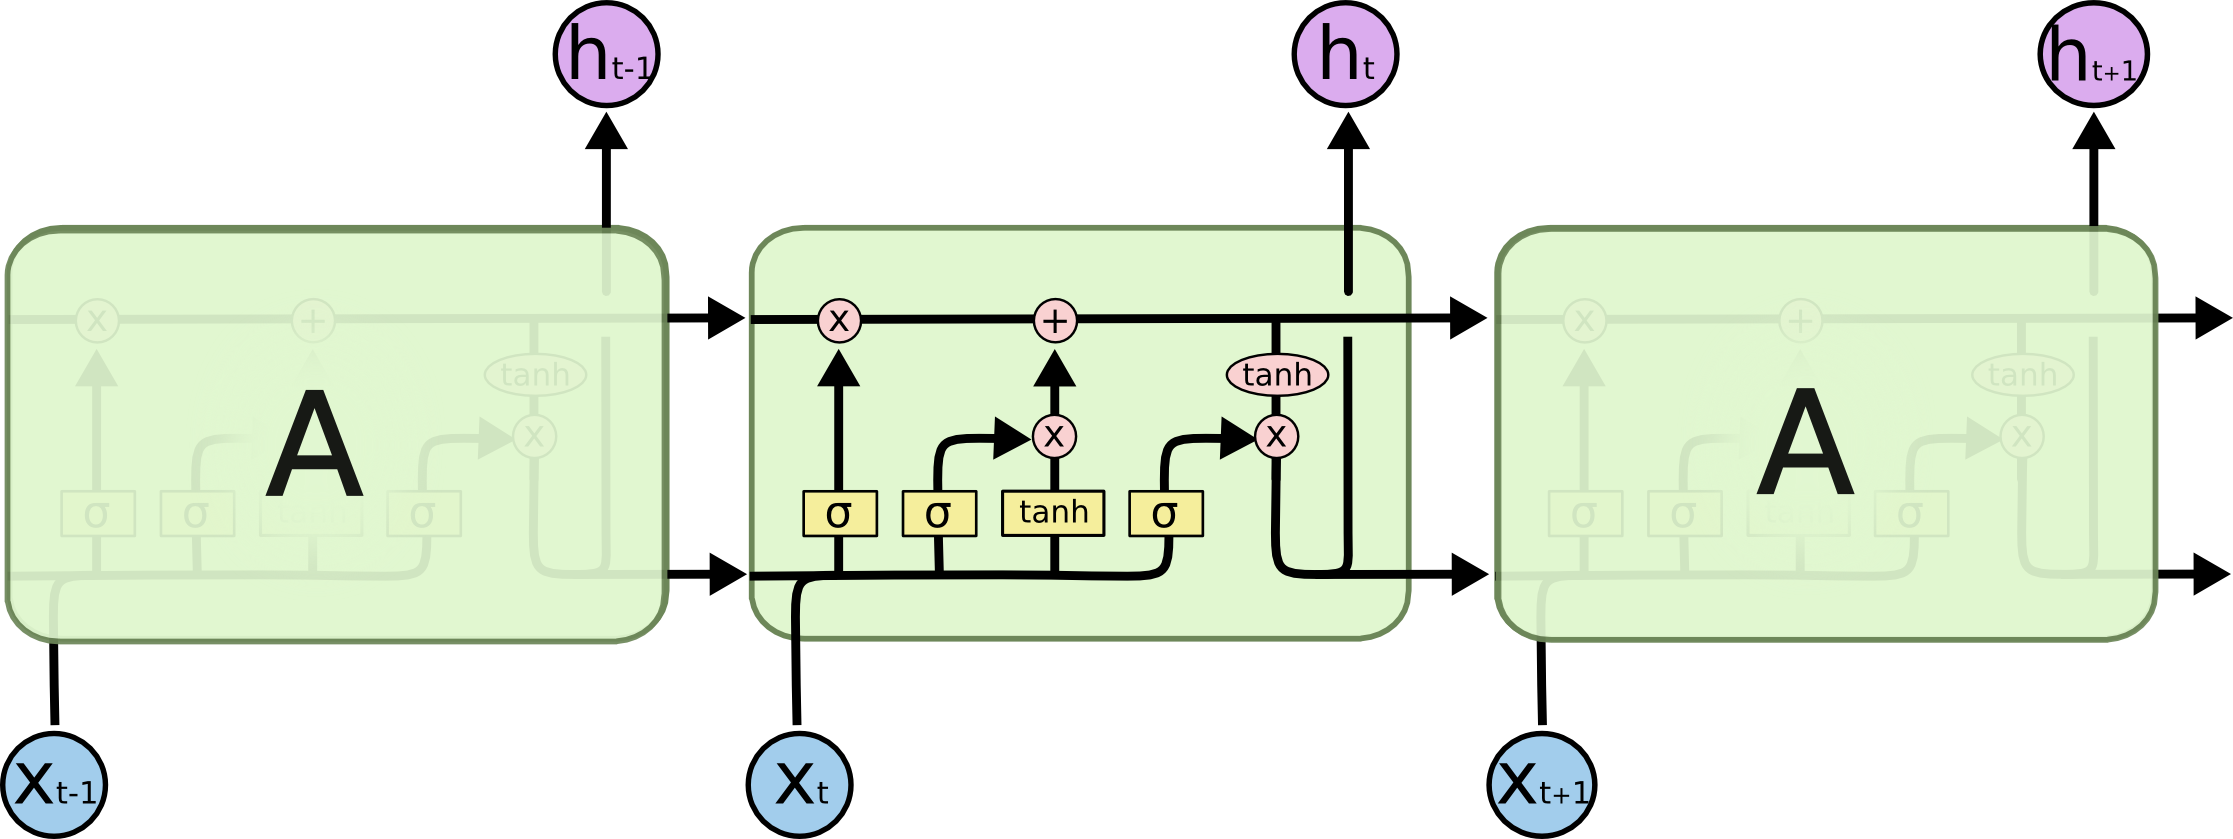 lstm3-chain